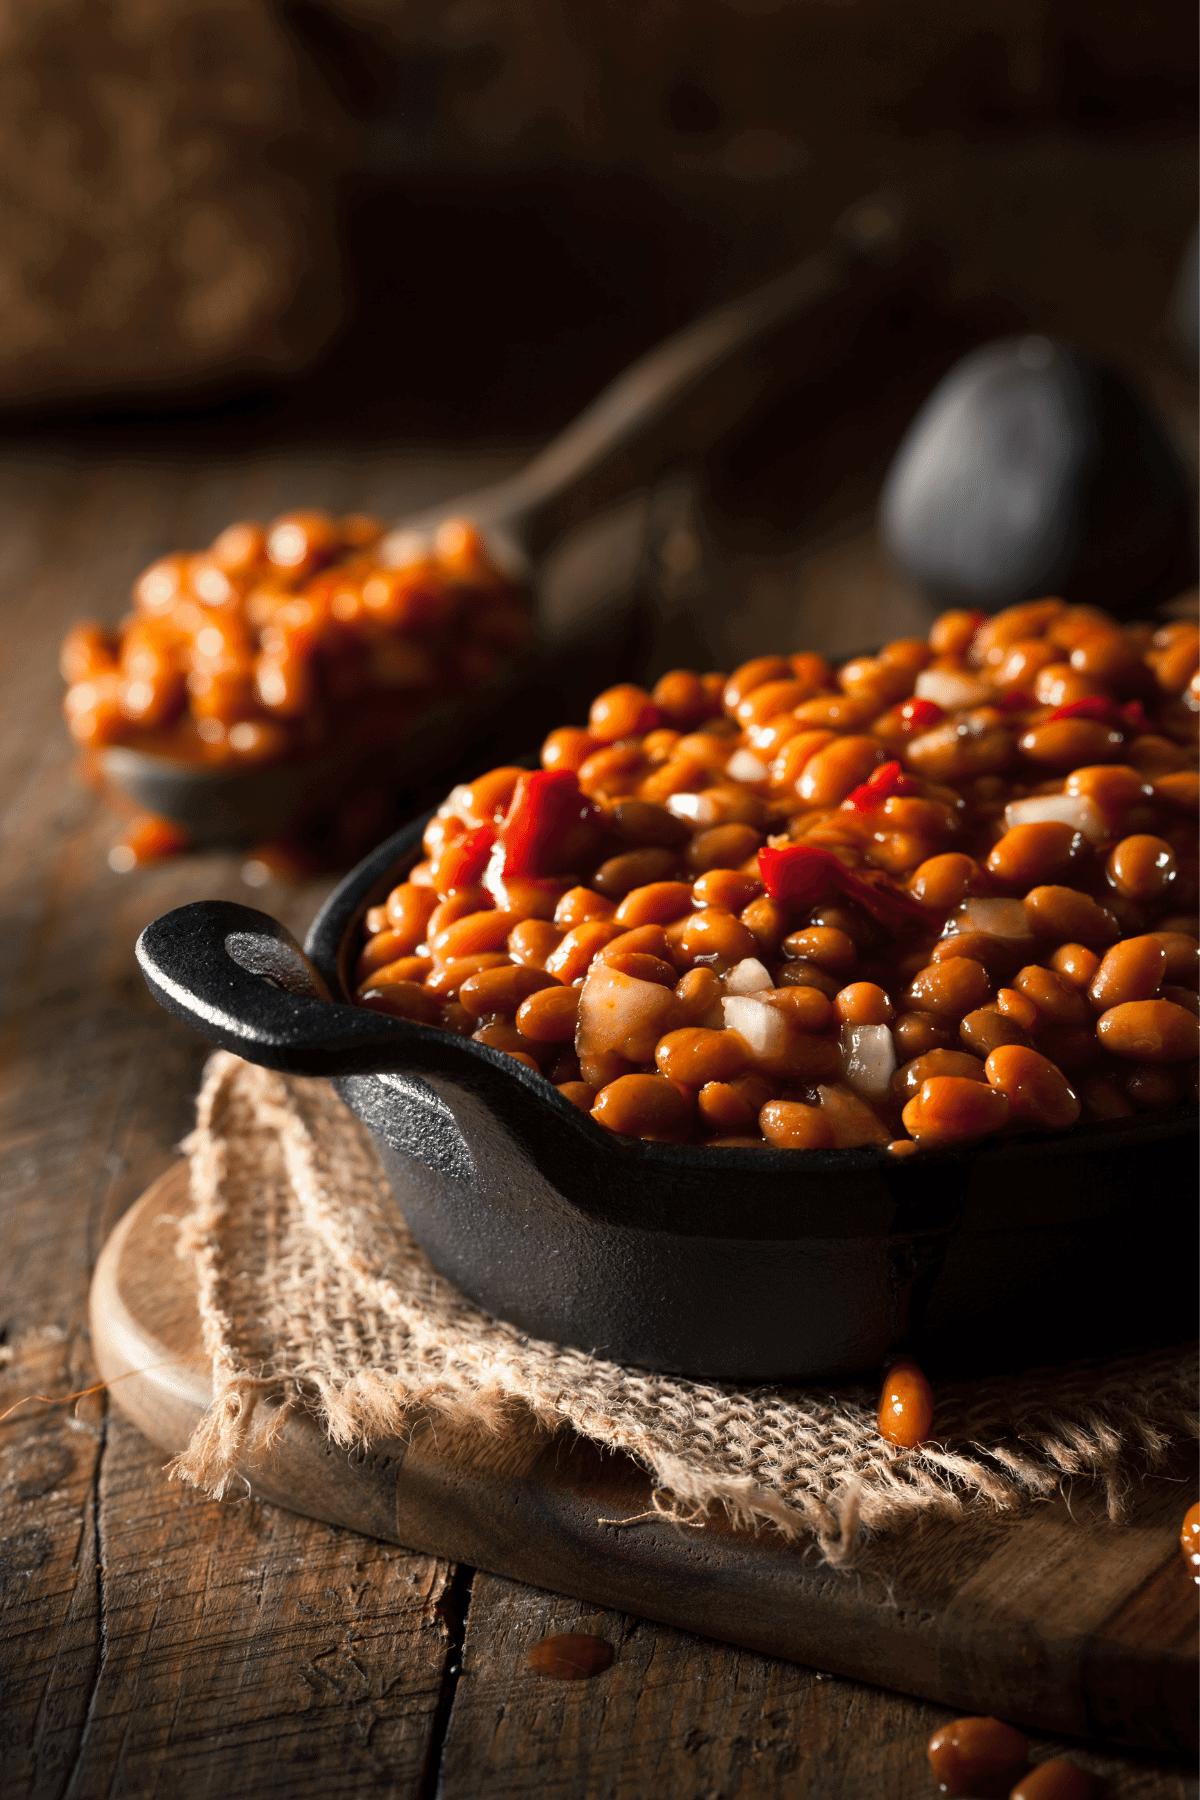 Baked beans fully cooked, dished up with a spoon